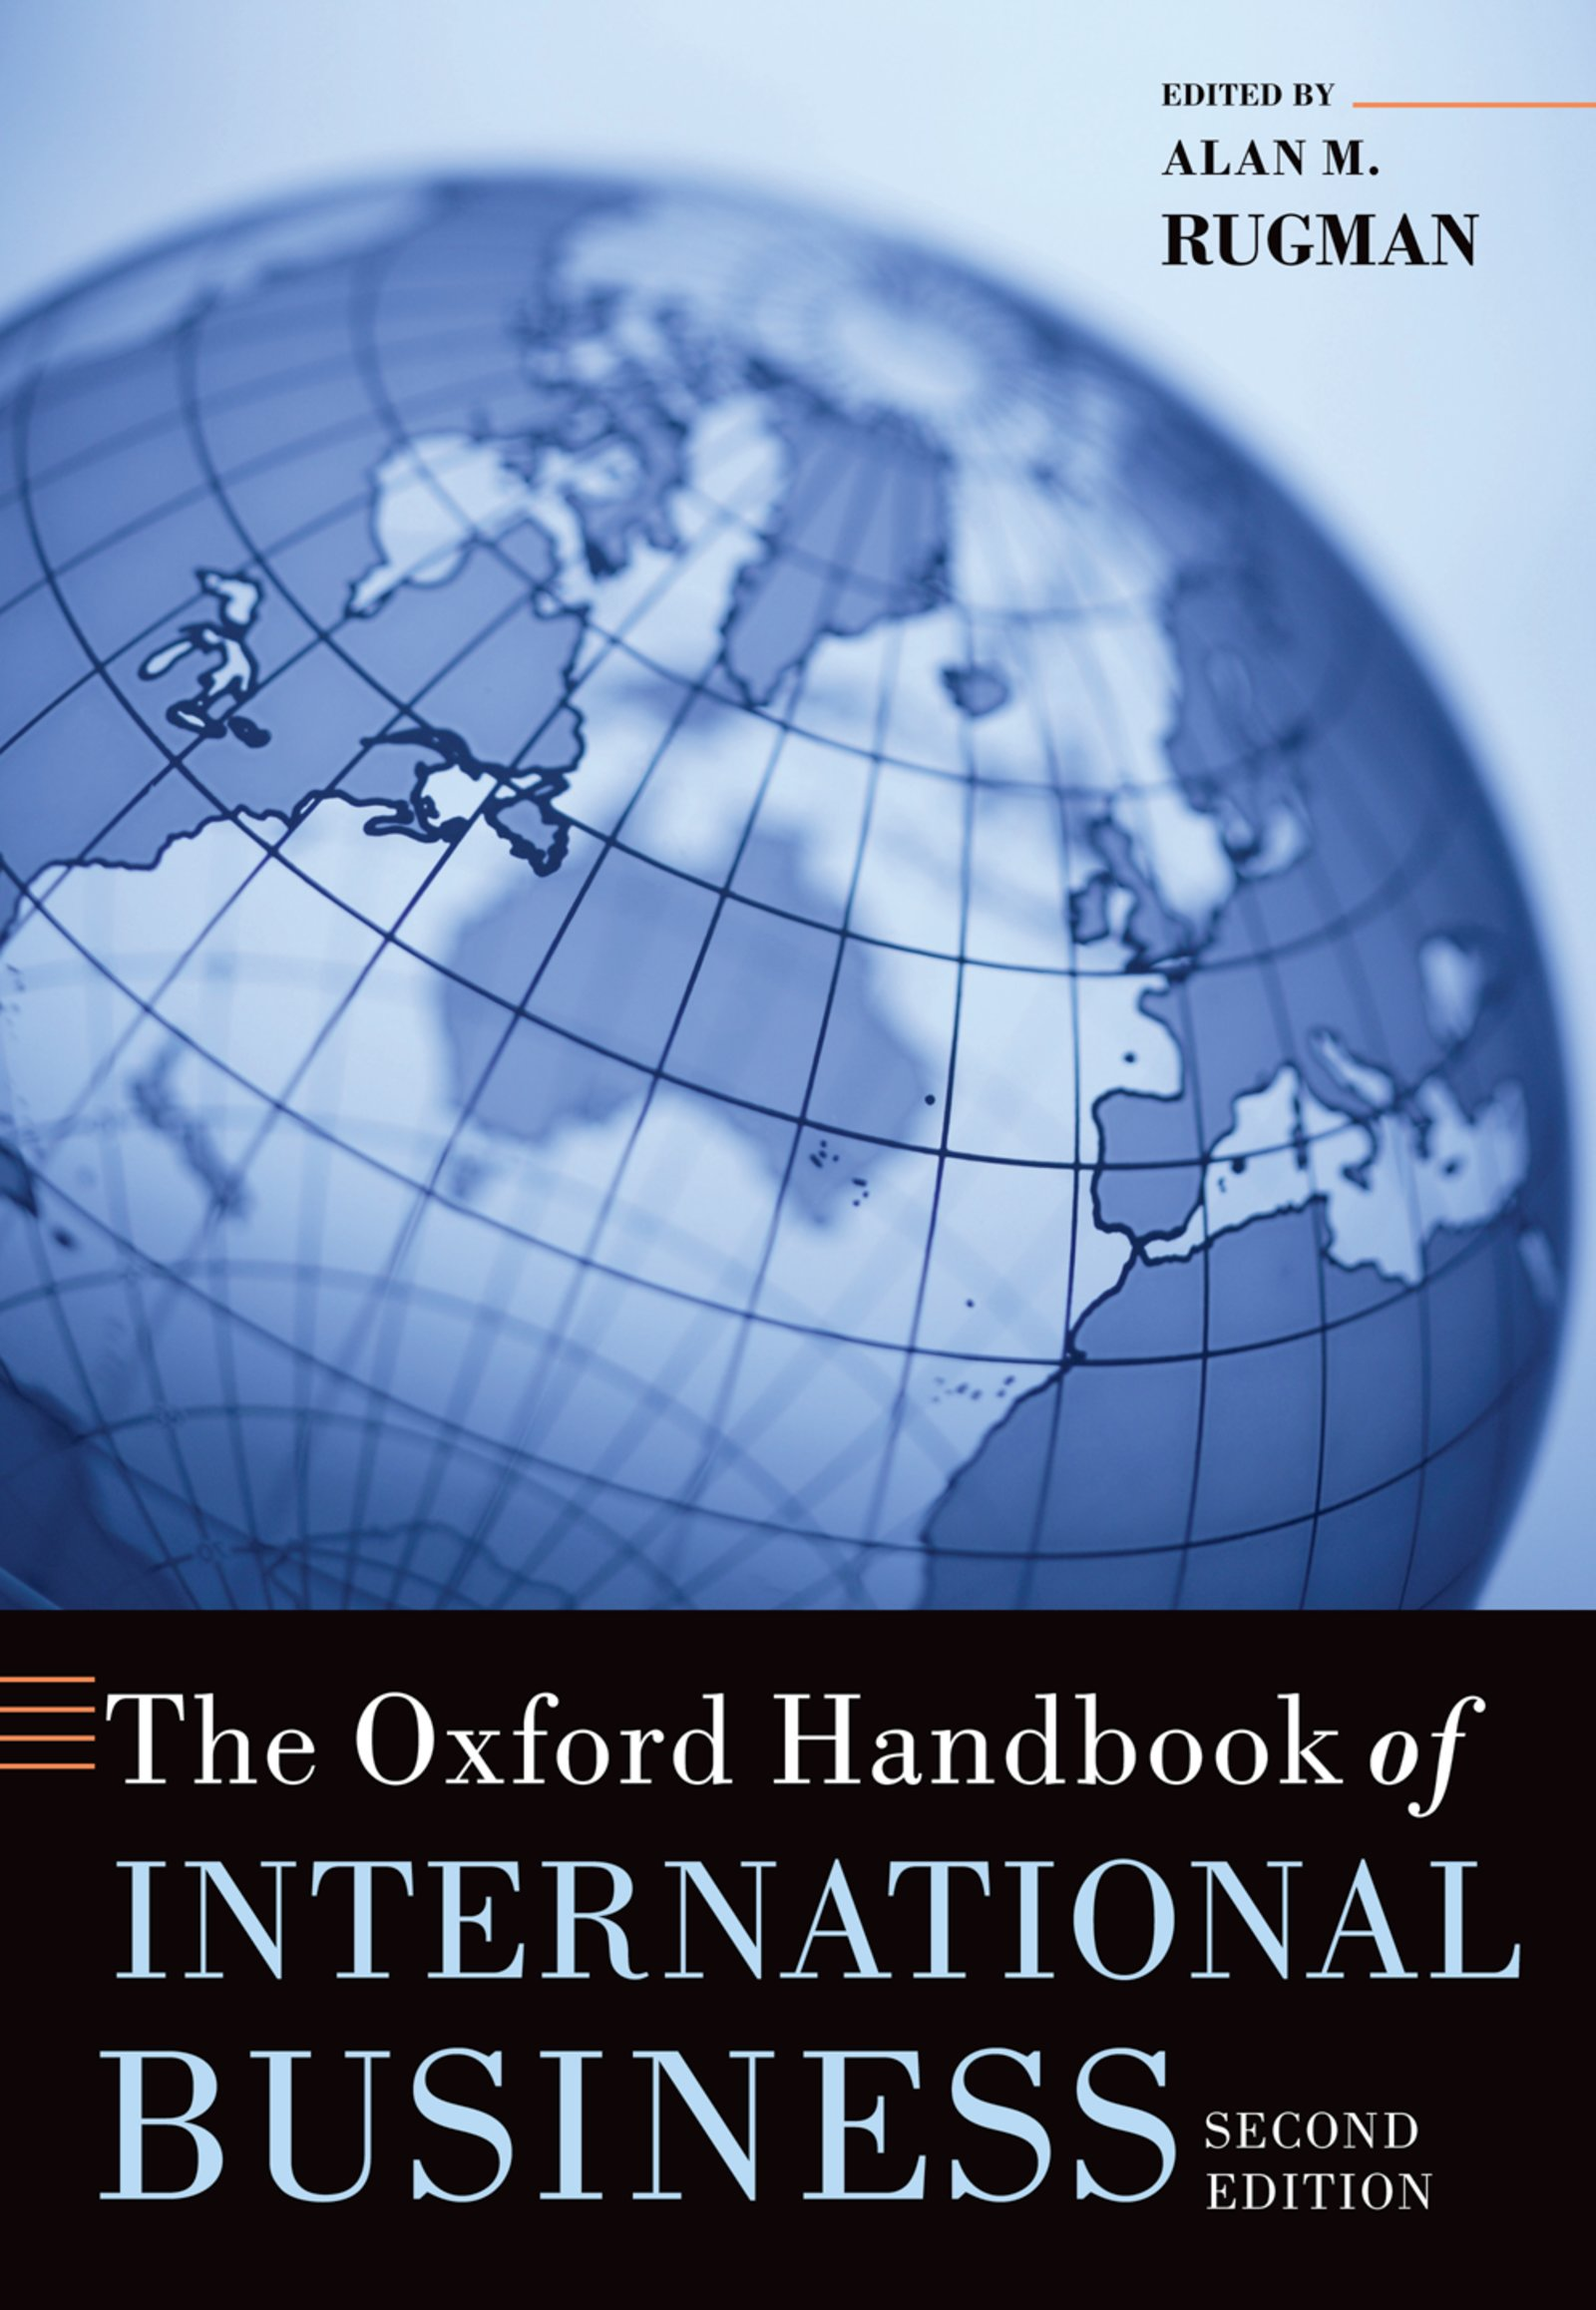 Download Ebook The Oxford Handbook of International Business (2nd ed.) by Alan M. Rugman Pdf